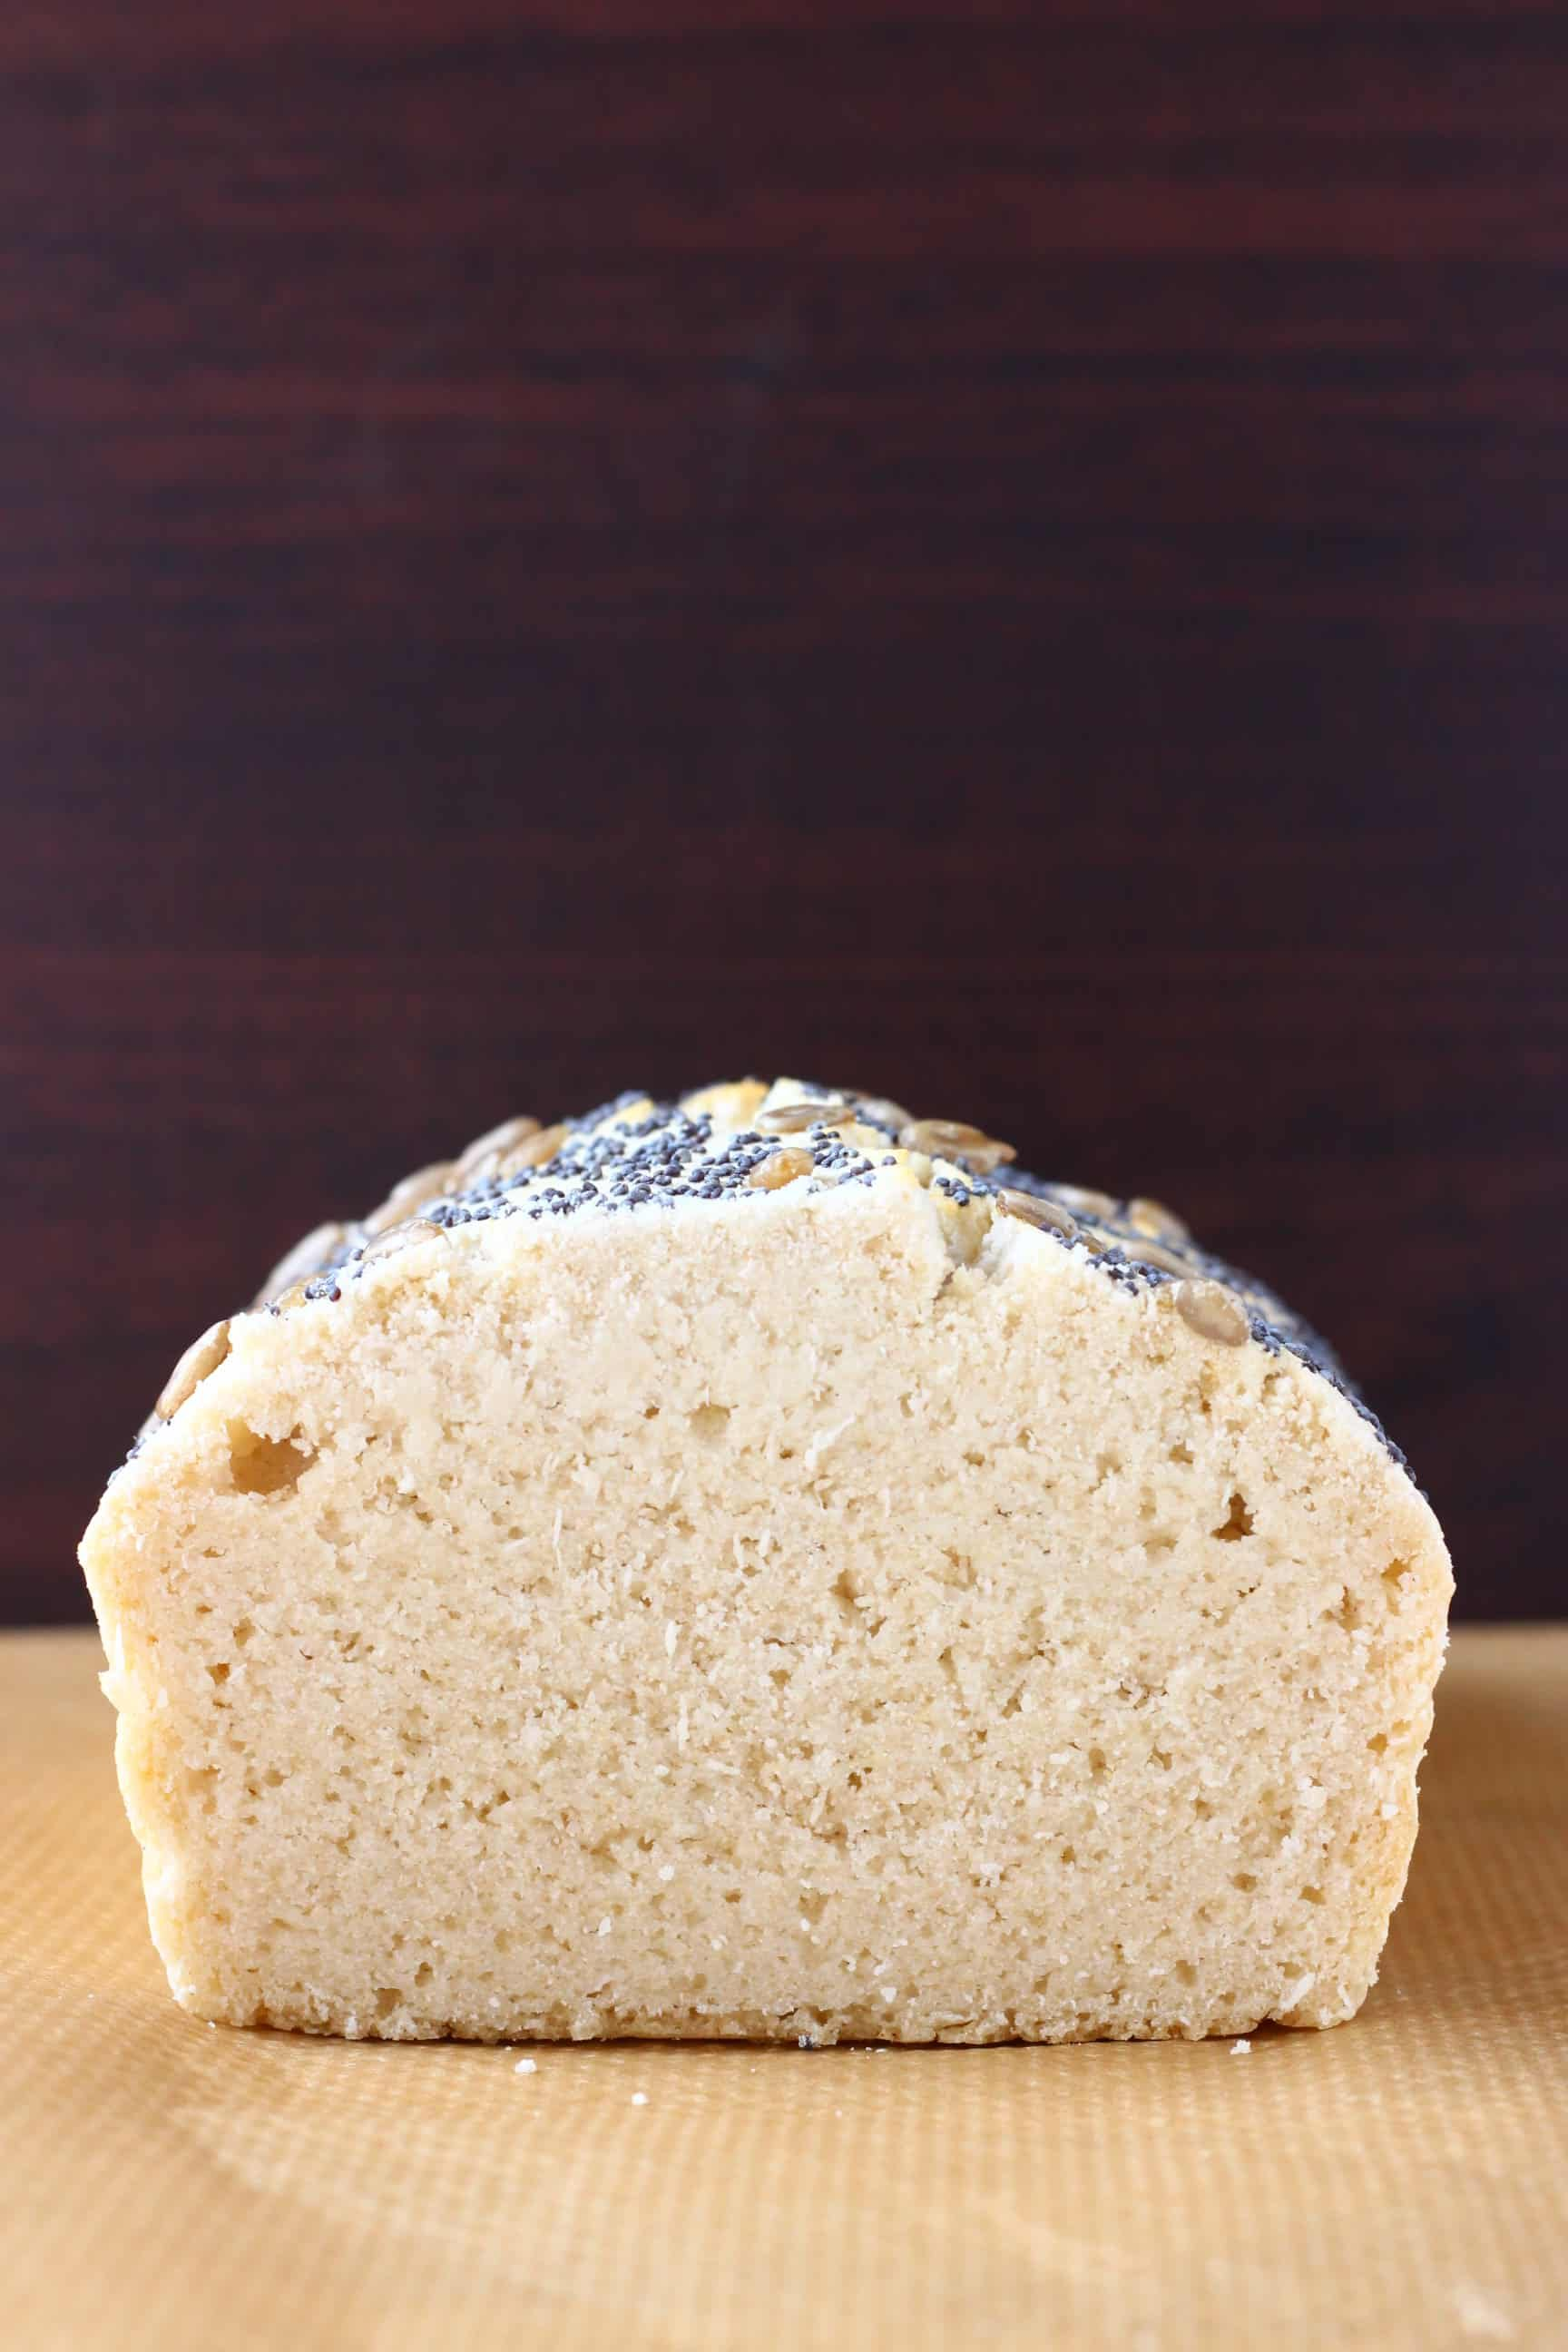 A sliced loaf of gluten-free rice bread on a sheet of brown baking paper